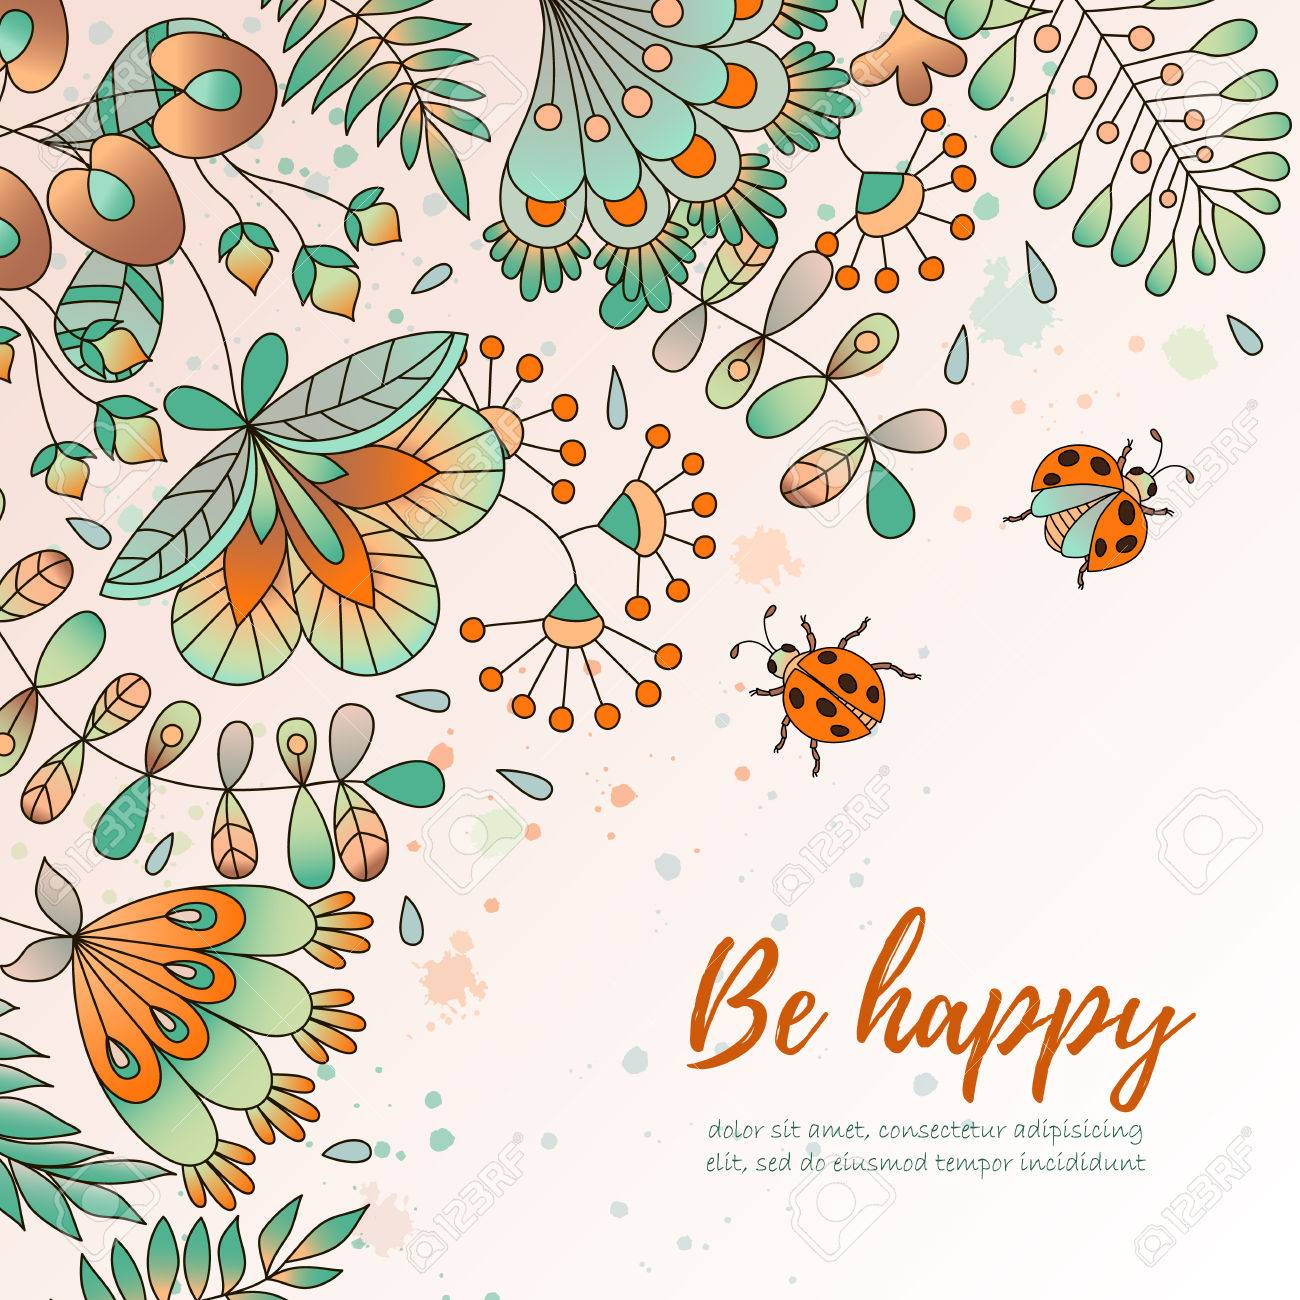 Card with flowers and ladybugs cute colorful floral background card with flowers and ladybugs cute colorful floral background be happy perfect for stopboris Images